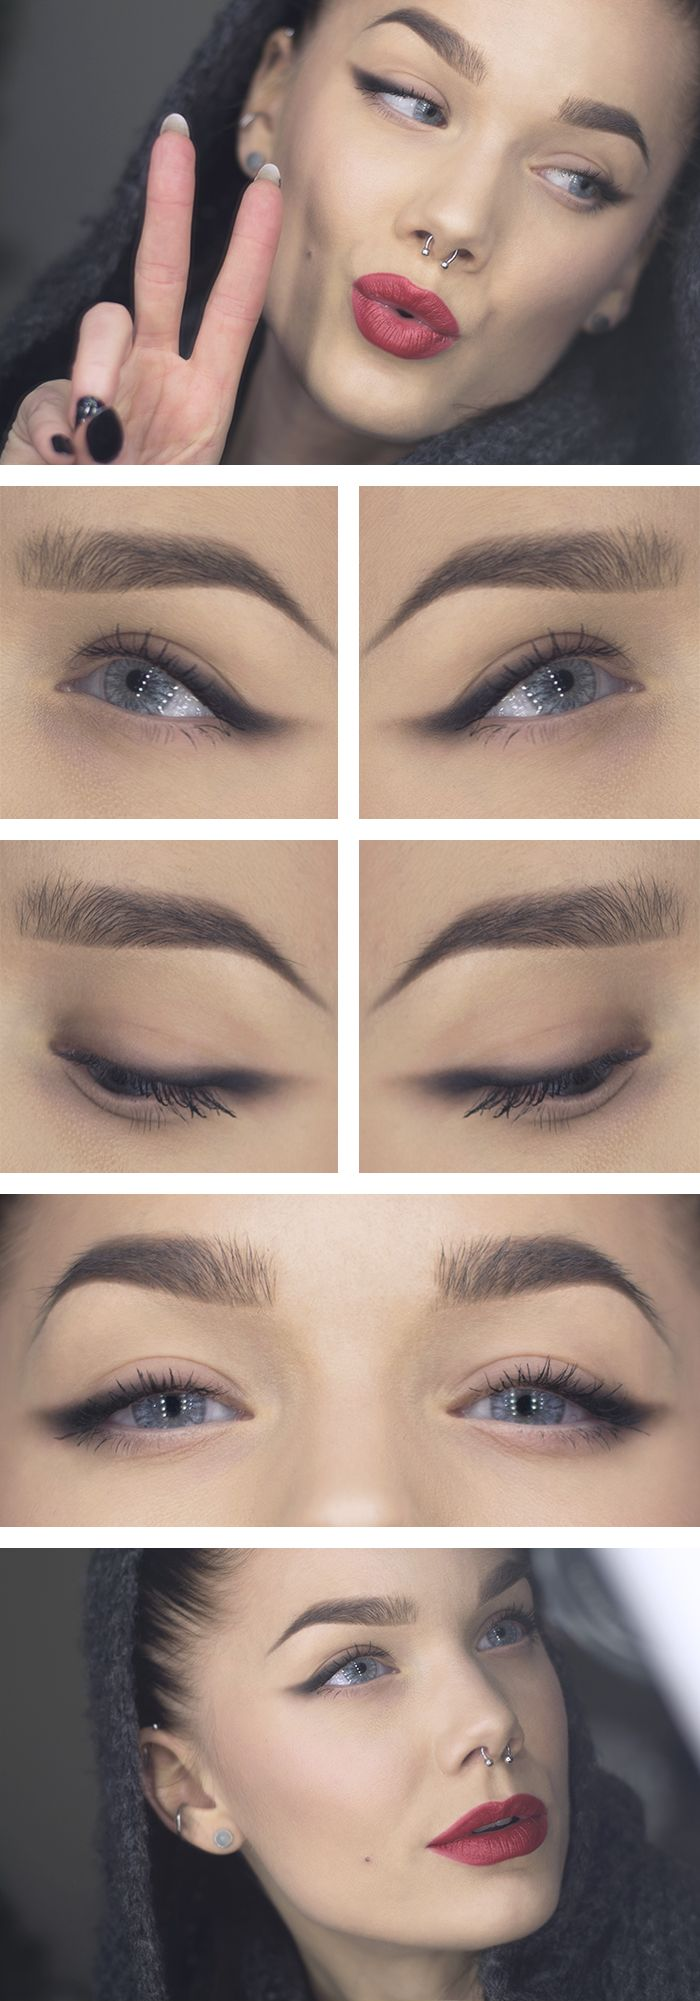 Love this simple makeup look by Linda Hallberg. She is an amazing makeup artist!